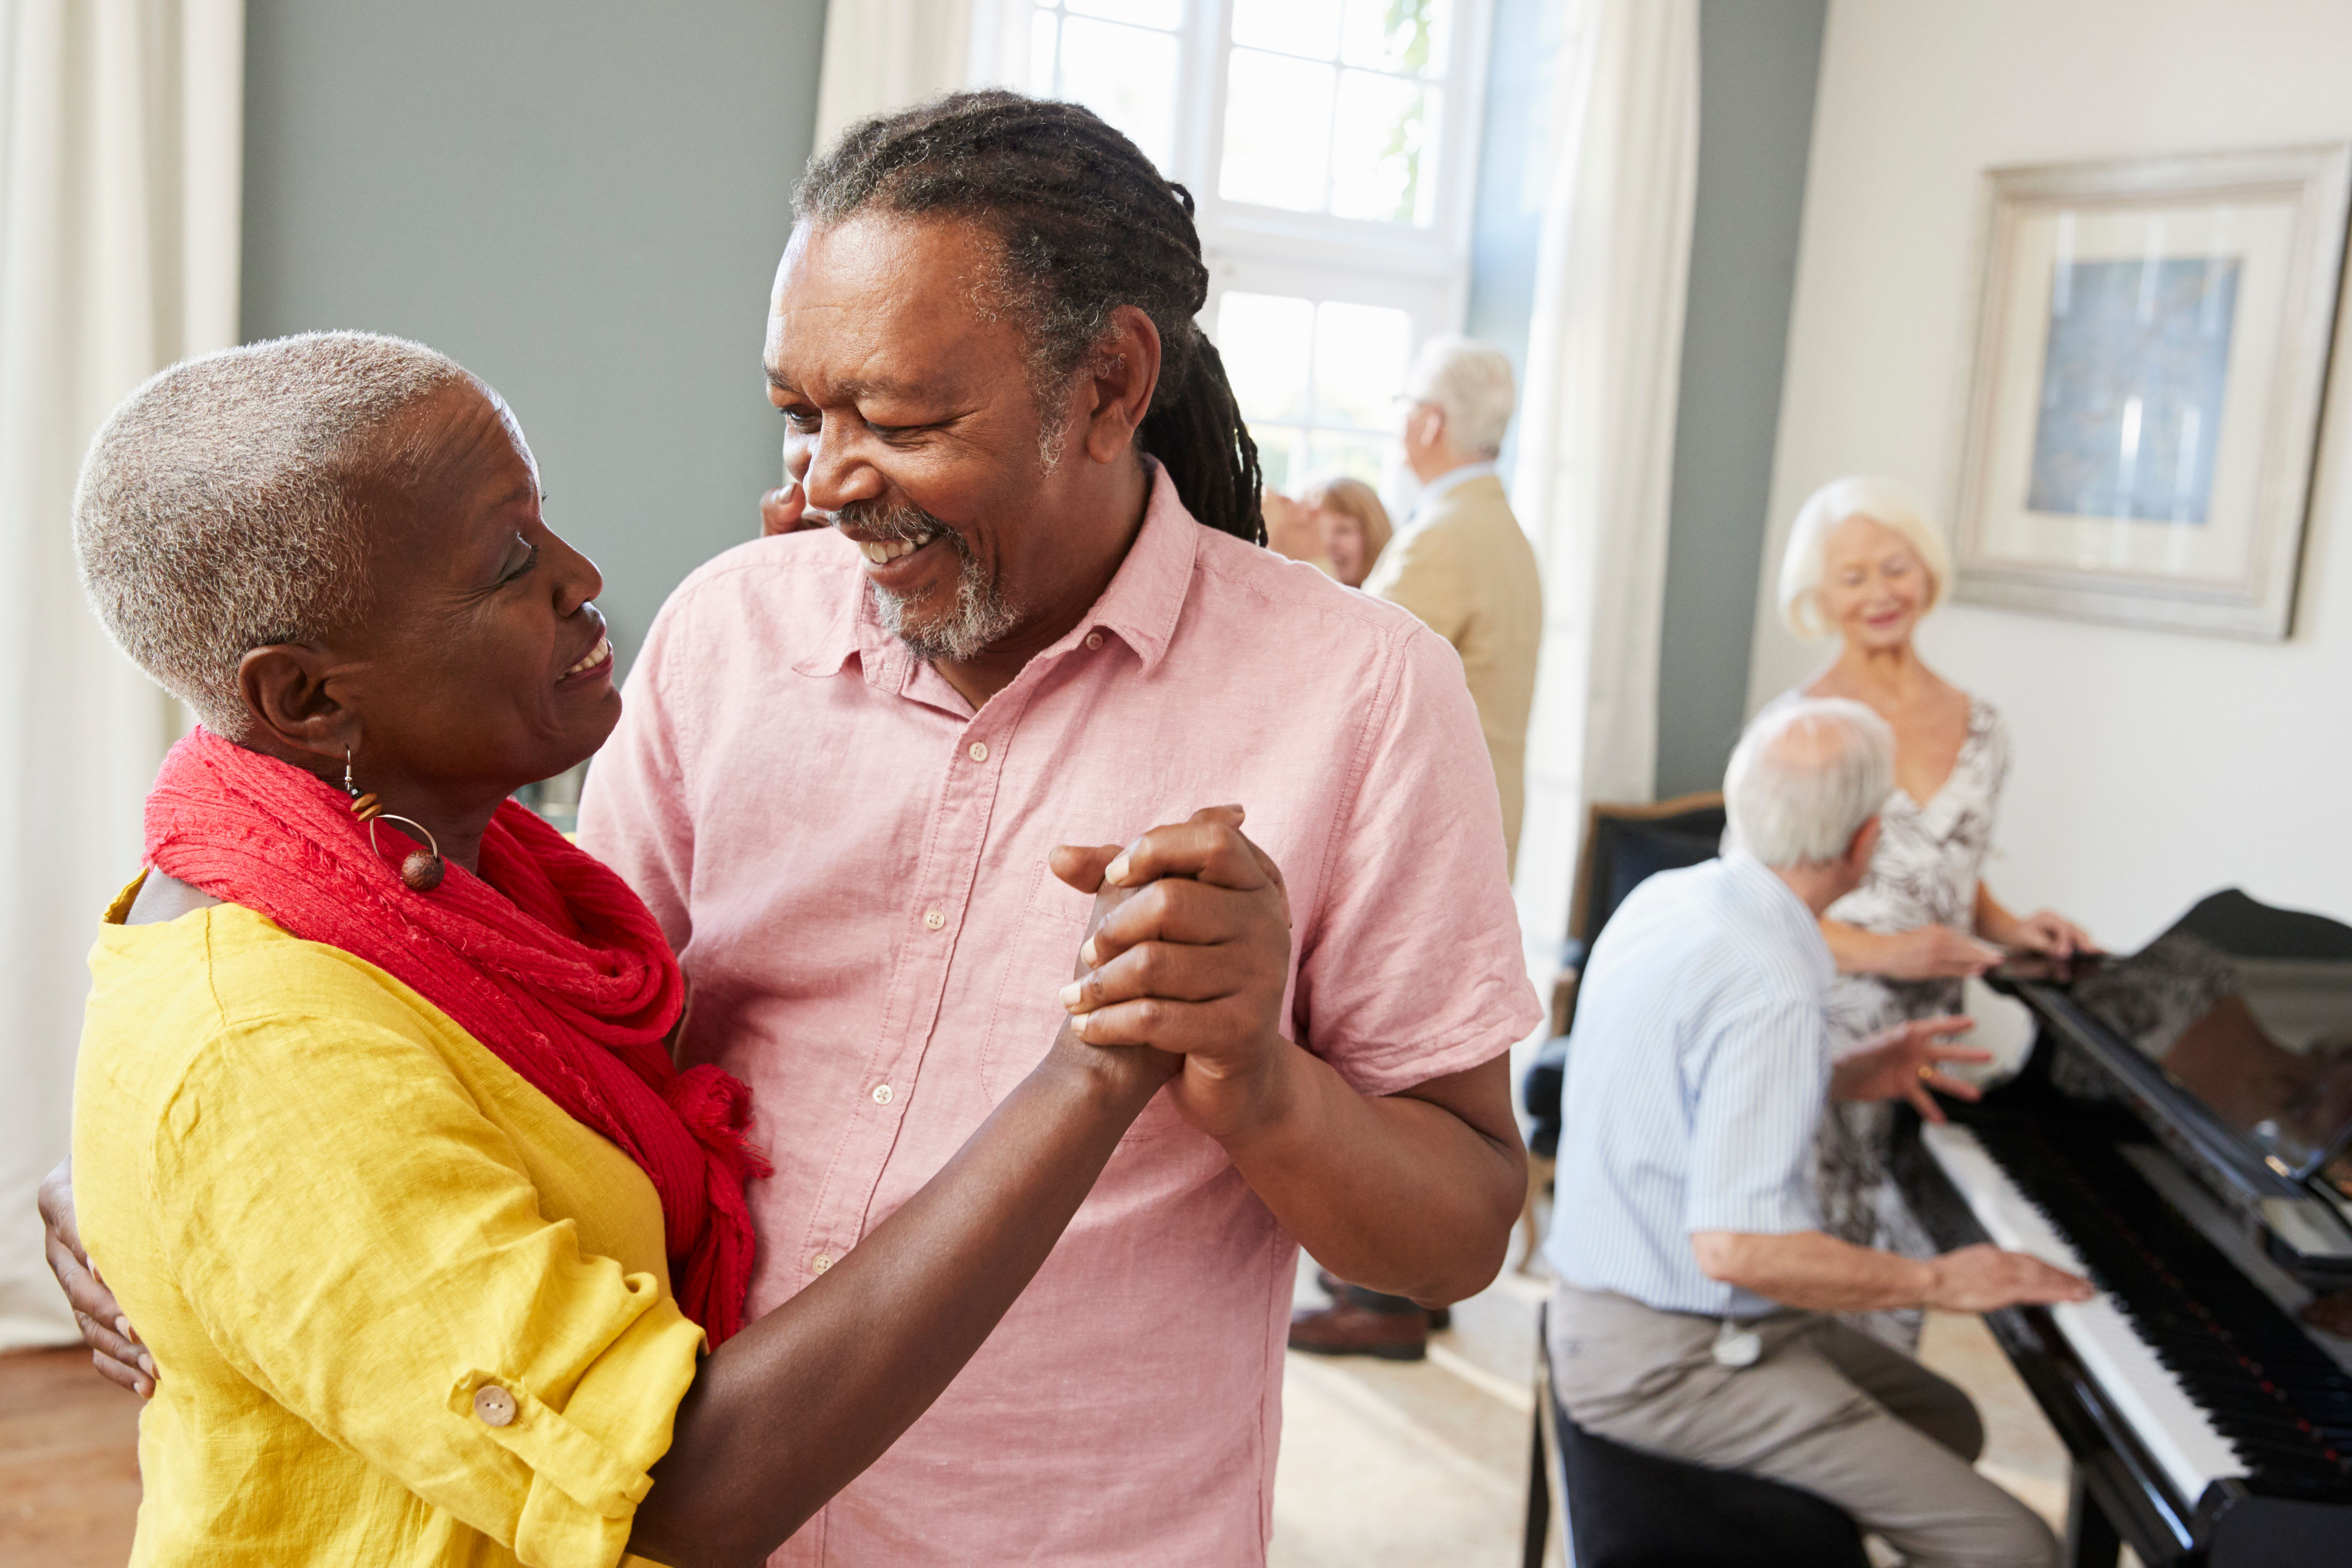 Residents dancing in a lounge at York Gardens in Edina, Minnesota